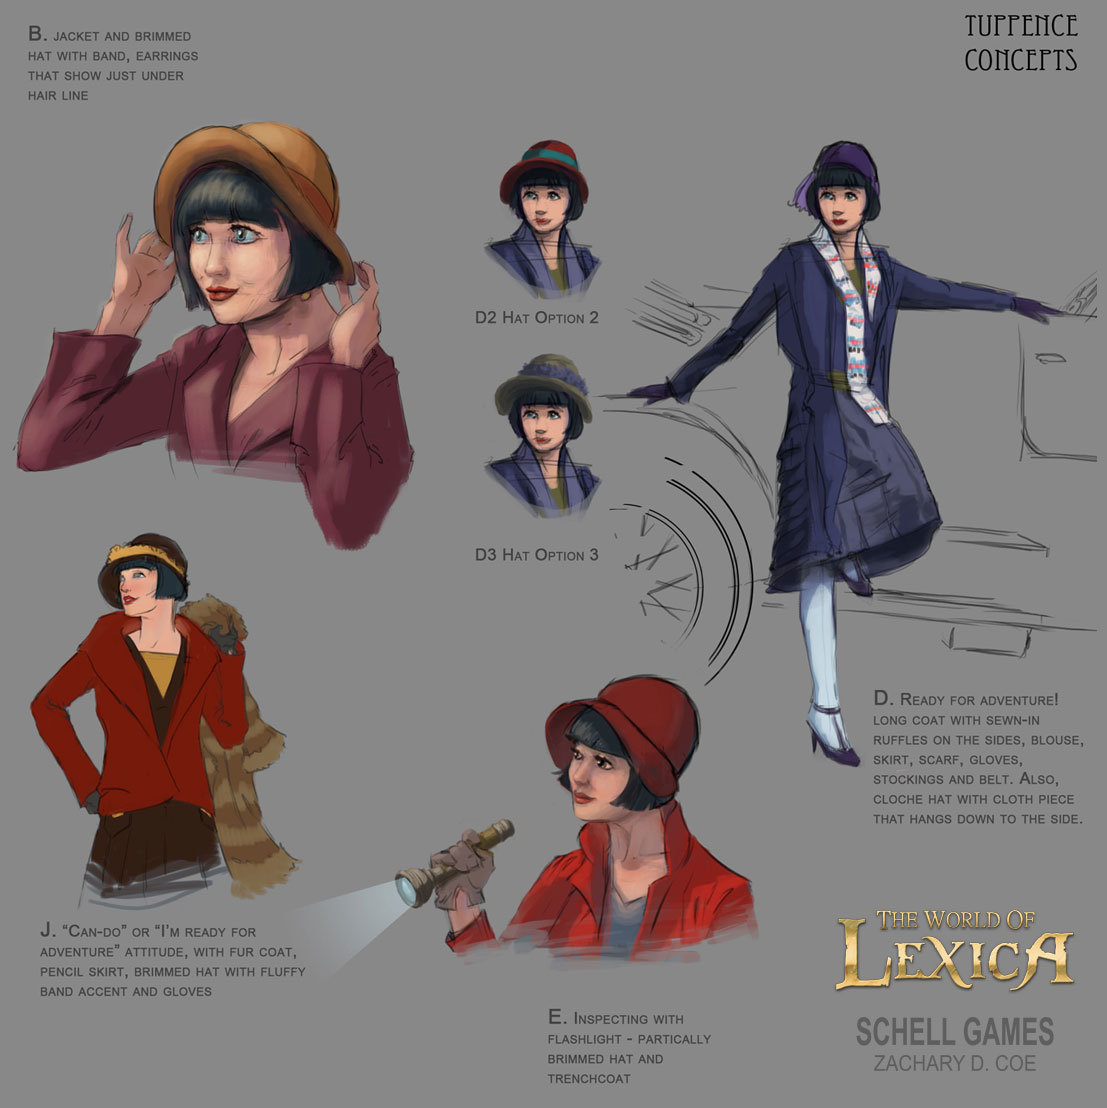 TUPPENCE COWLEY Concept Sketches by Zachary D. Coe